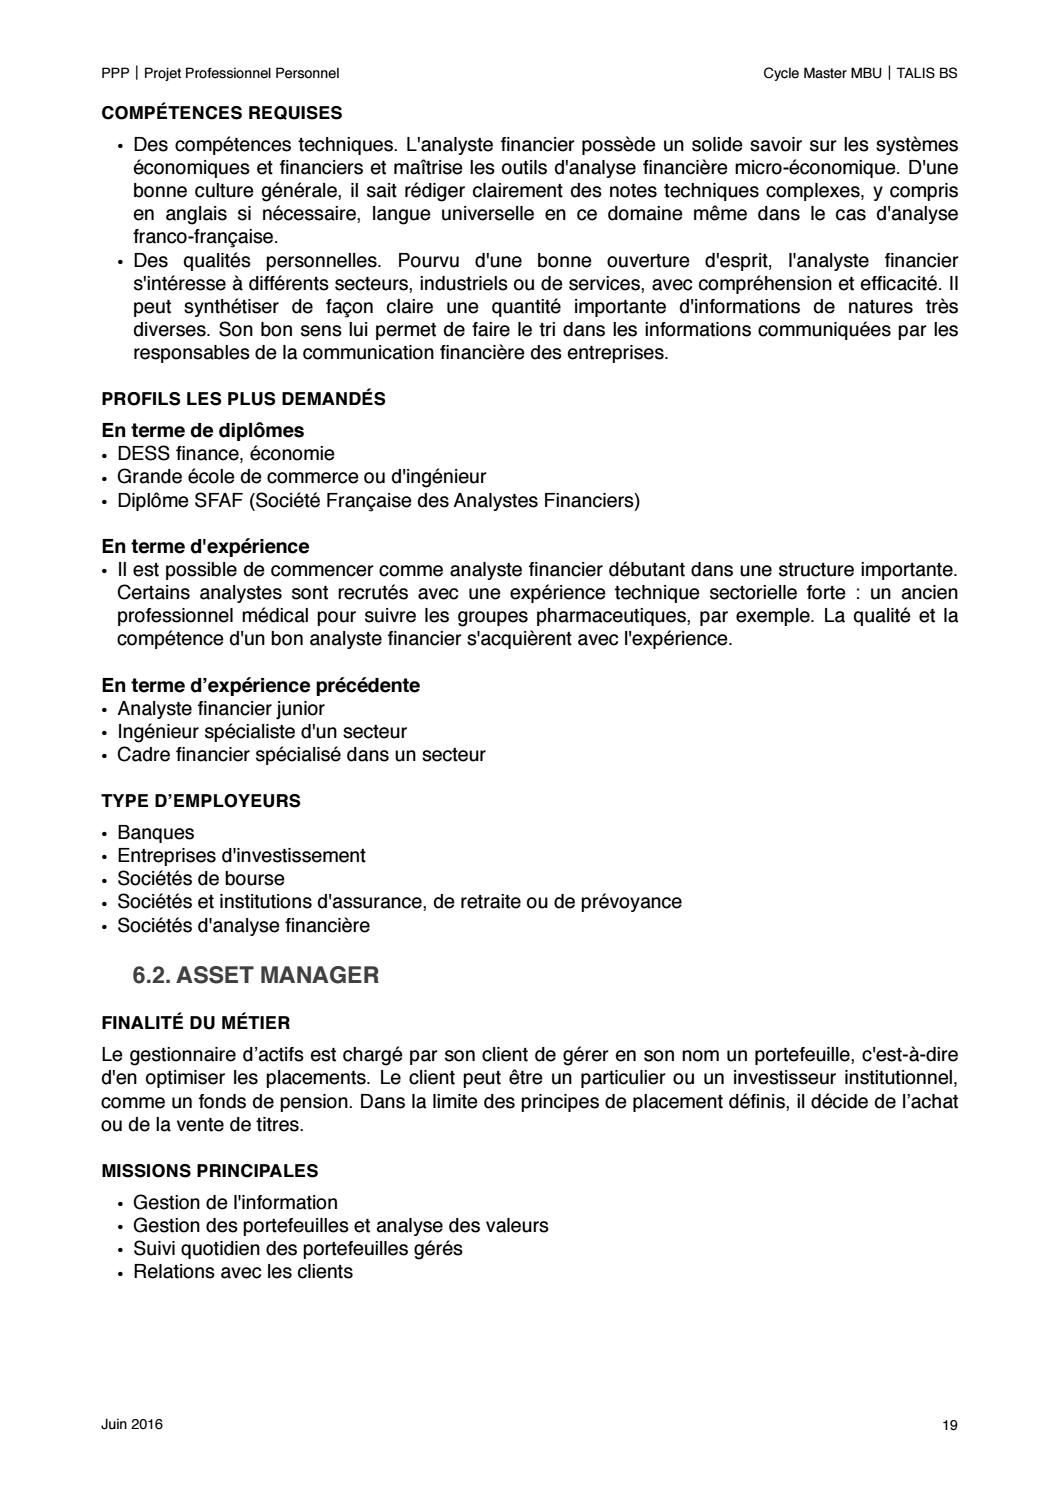 PPP / PROJET PROFESSIONNEL PERSONNALISÉ by ValentinLhoste - issuu